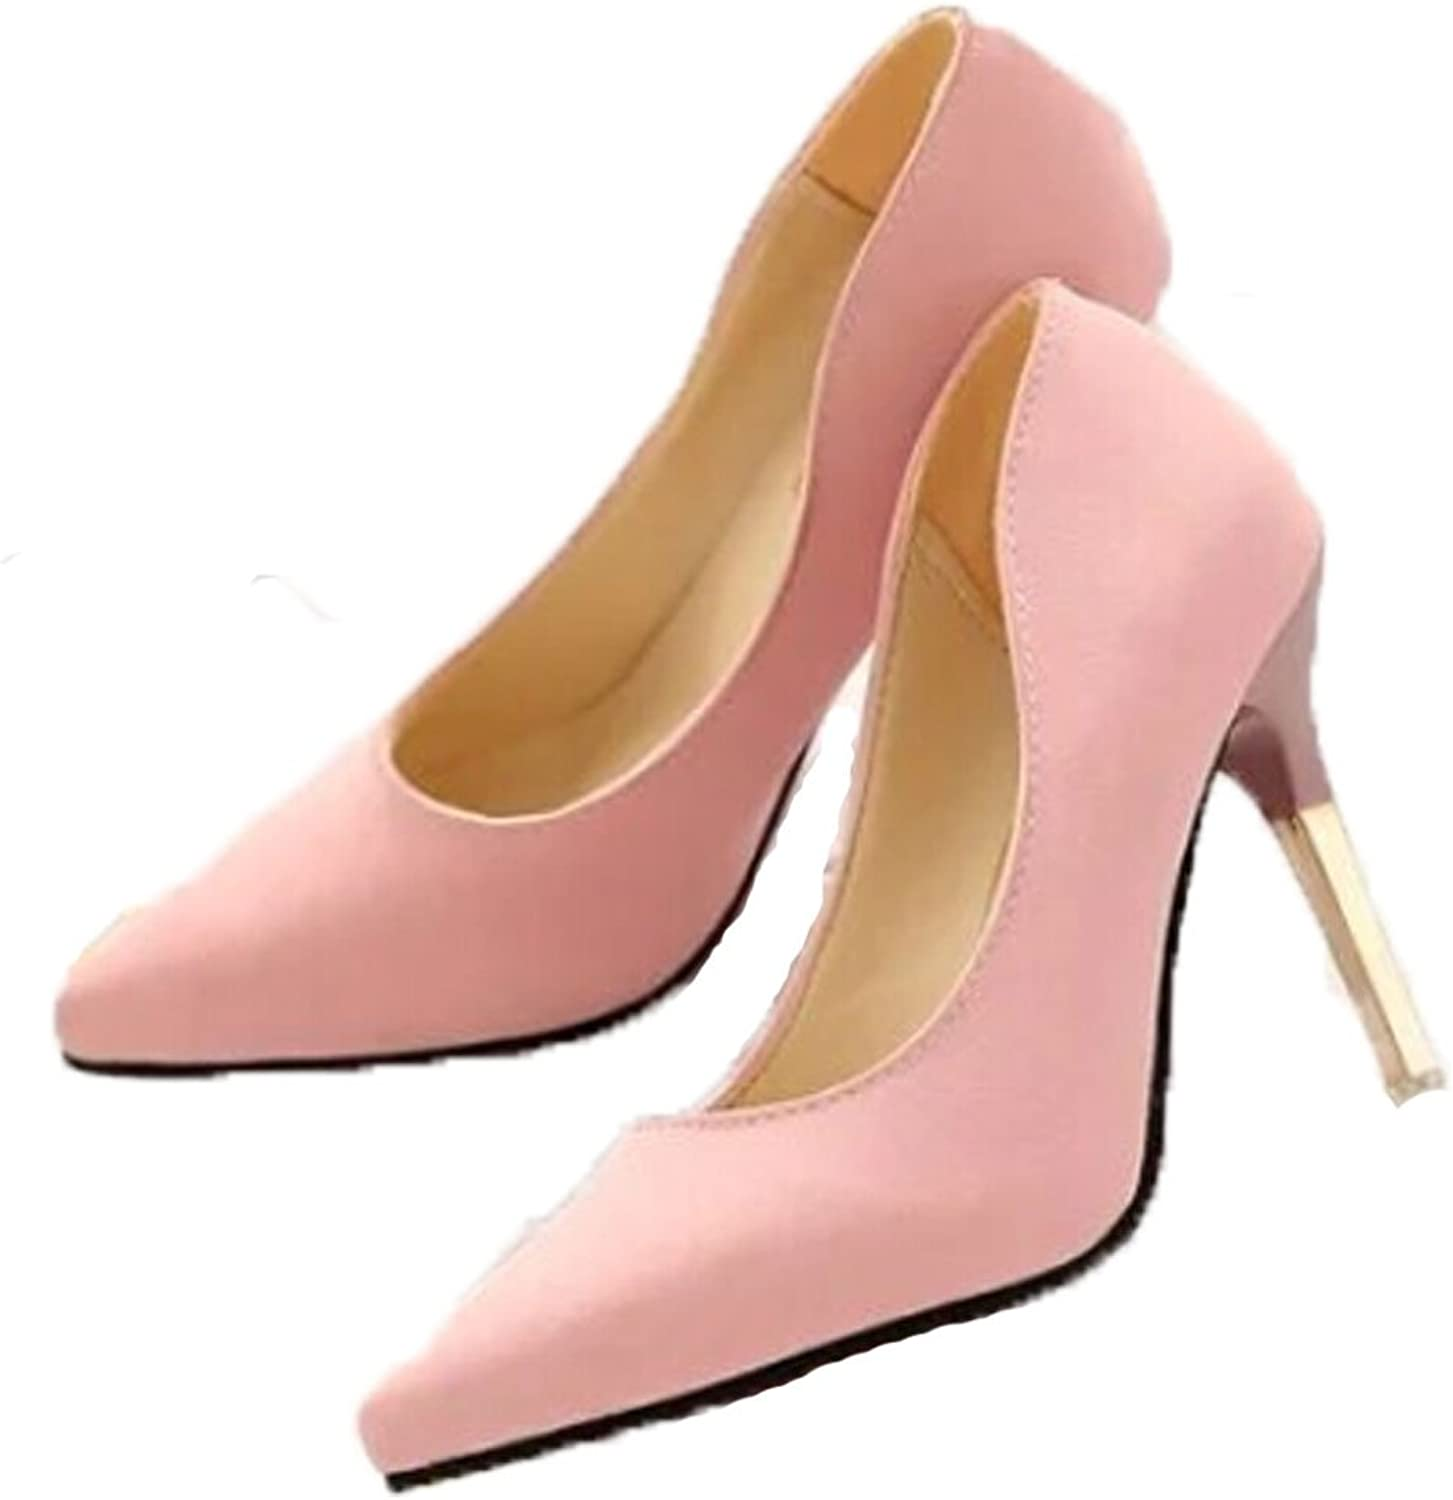 San hojas Suede Thin Heel Pumps OL Wind Pumps Ladies Pink